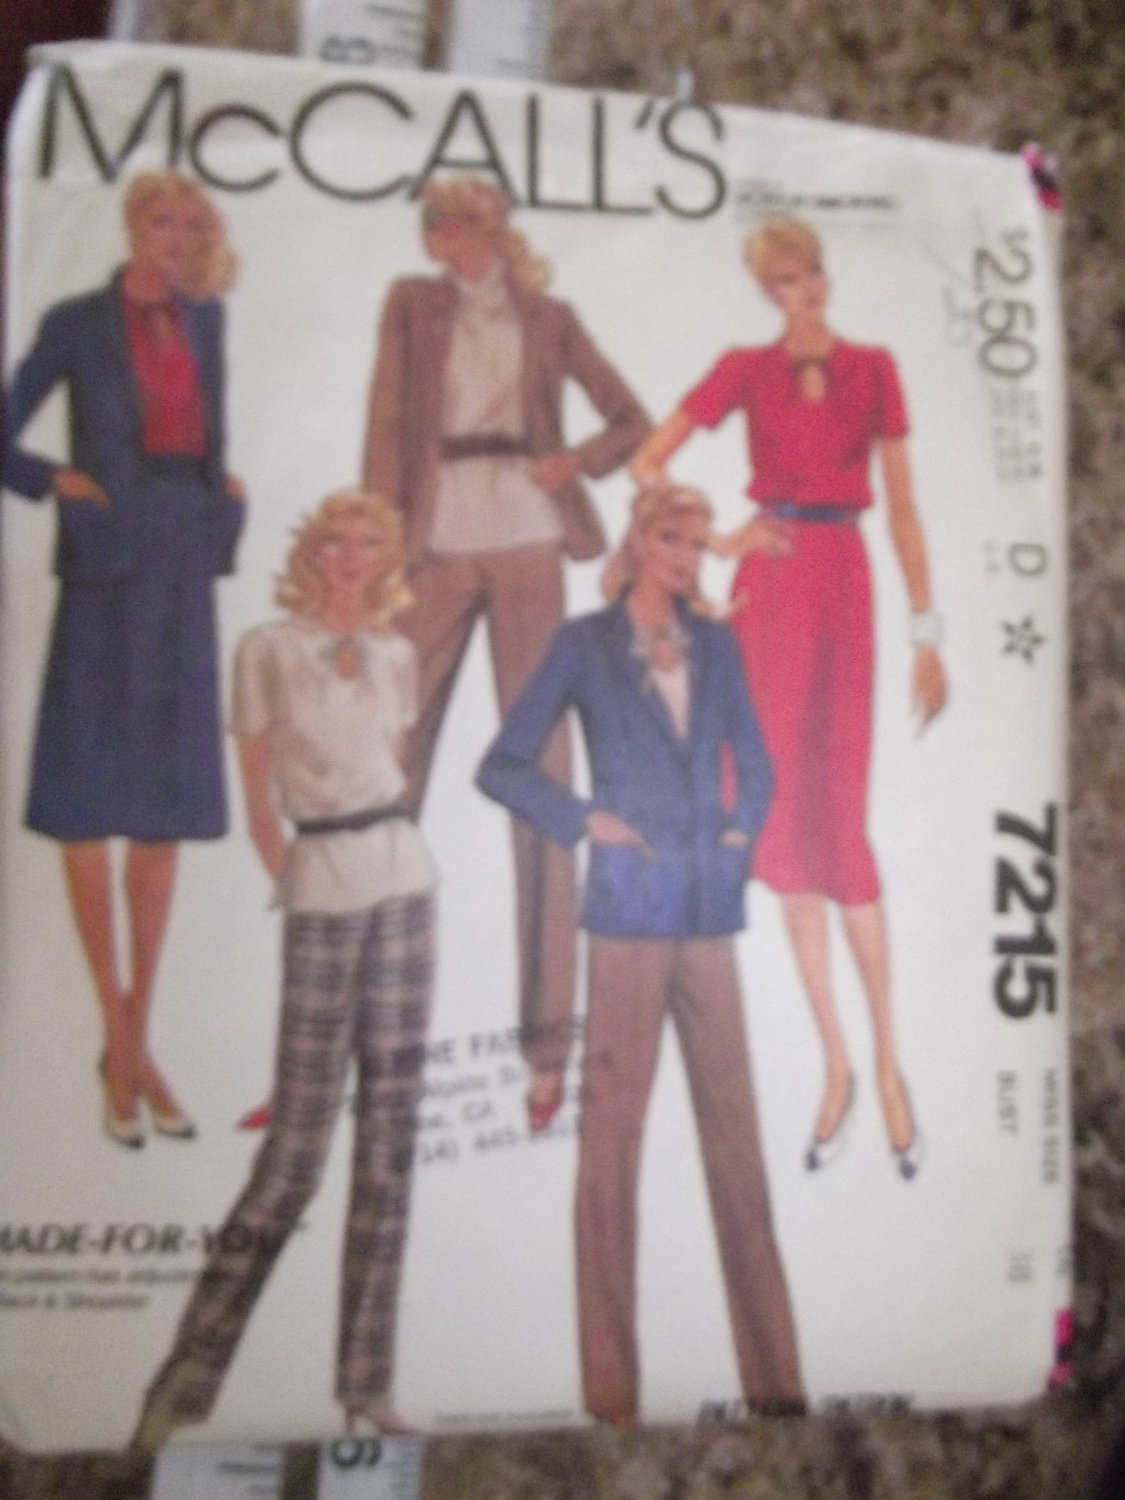 Vintage McCalls pattern 7215 size 16 from 1980